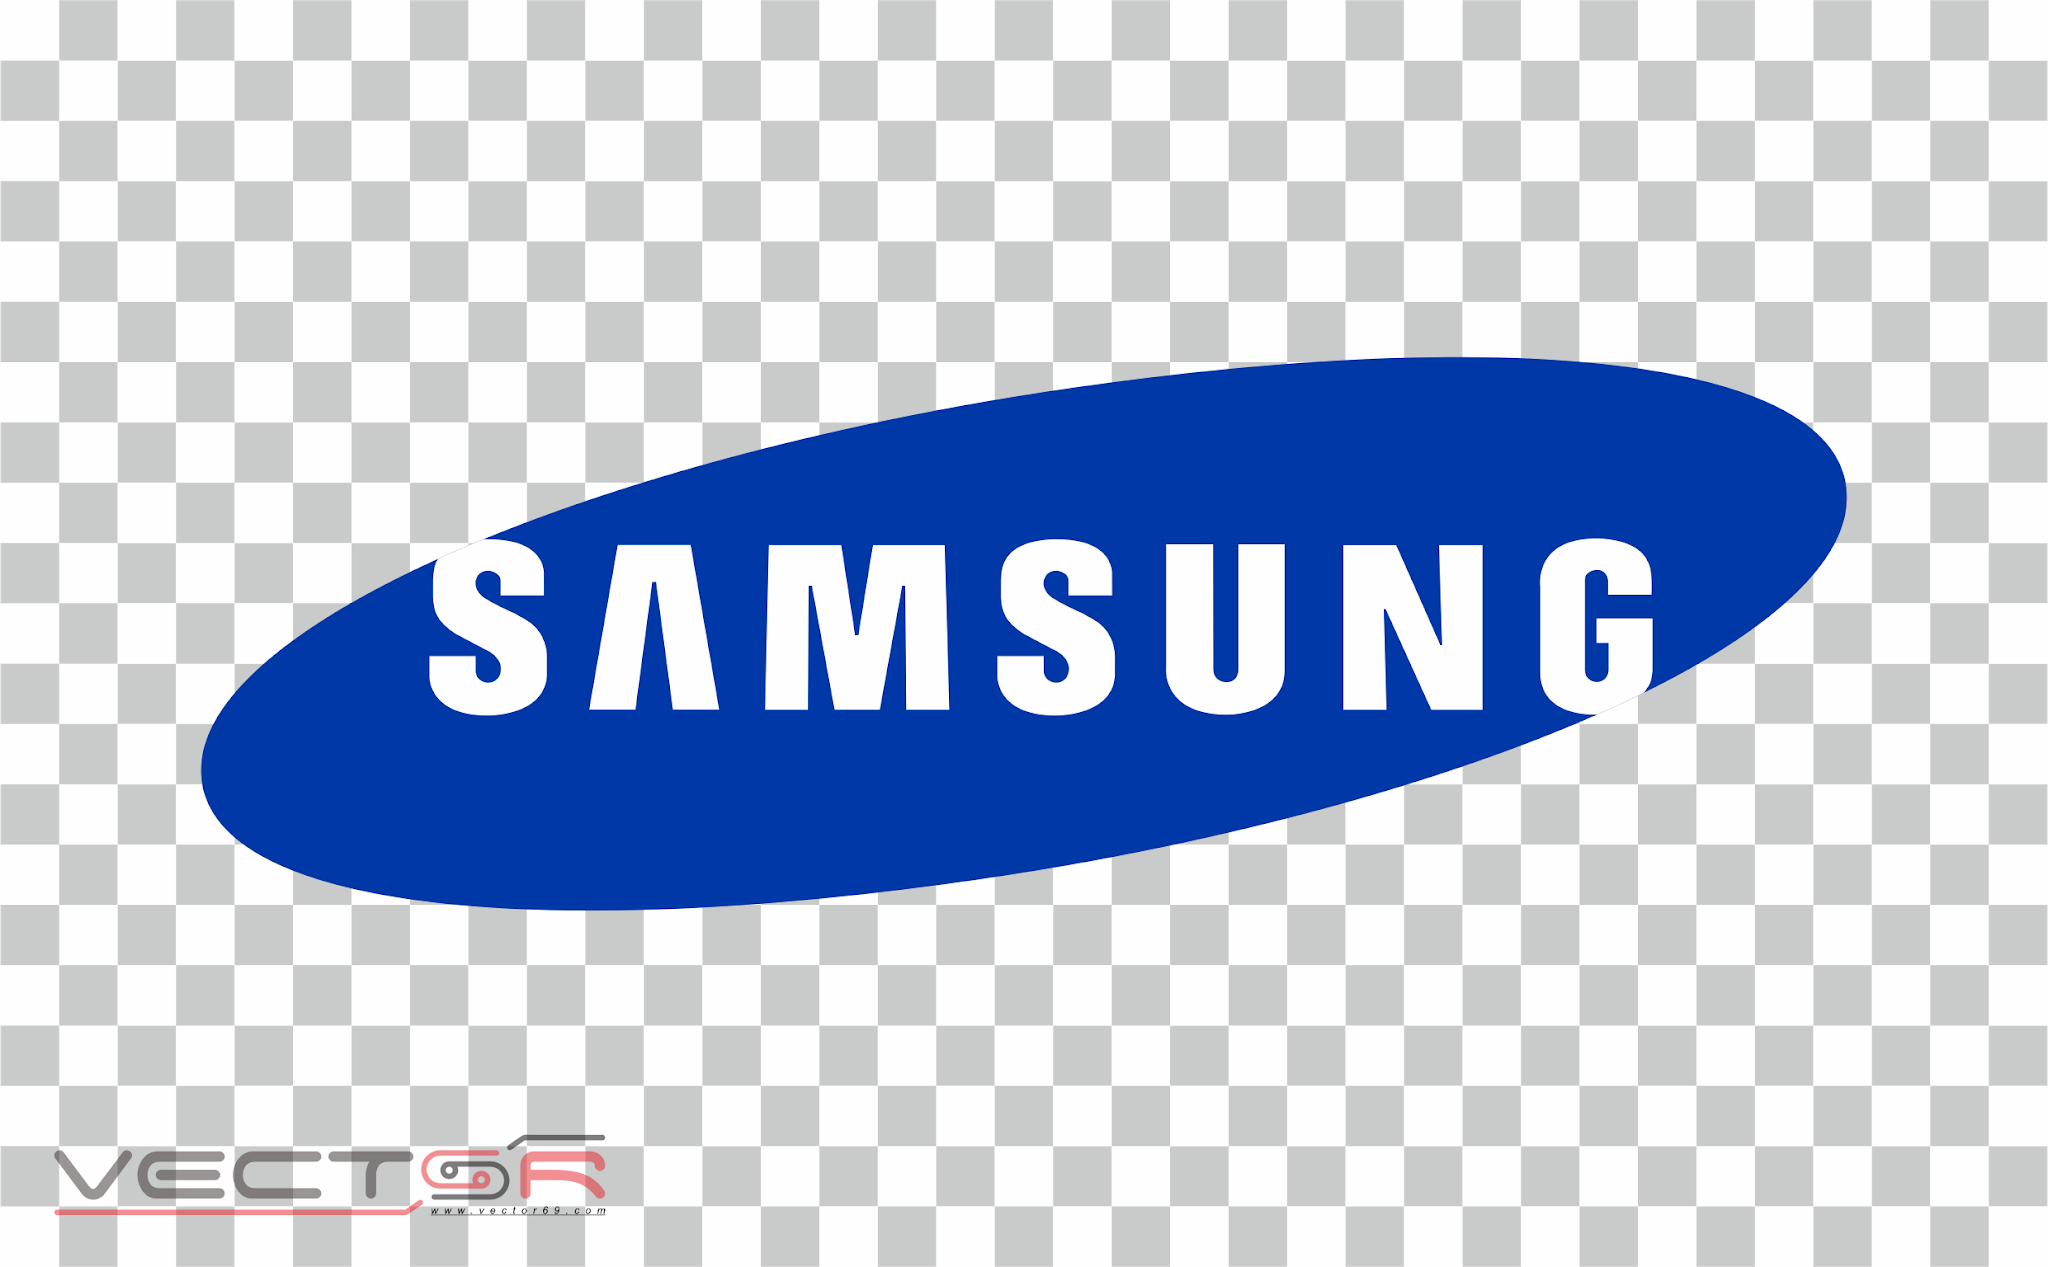 Samsung Logo - Download Vector File PNG (Portable Network Graphics)